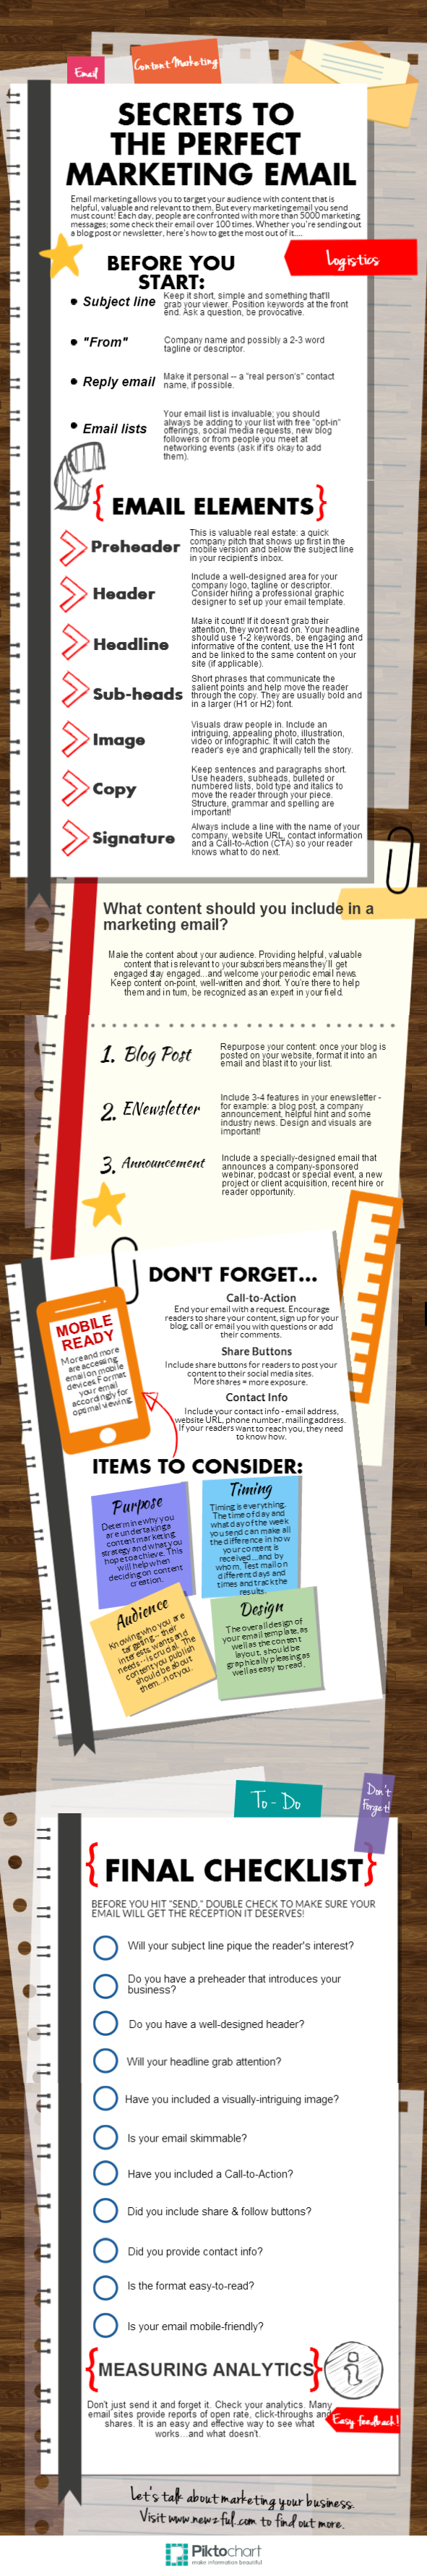 Critical Elements Of A Perfect Marketing Email infographic